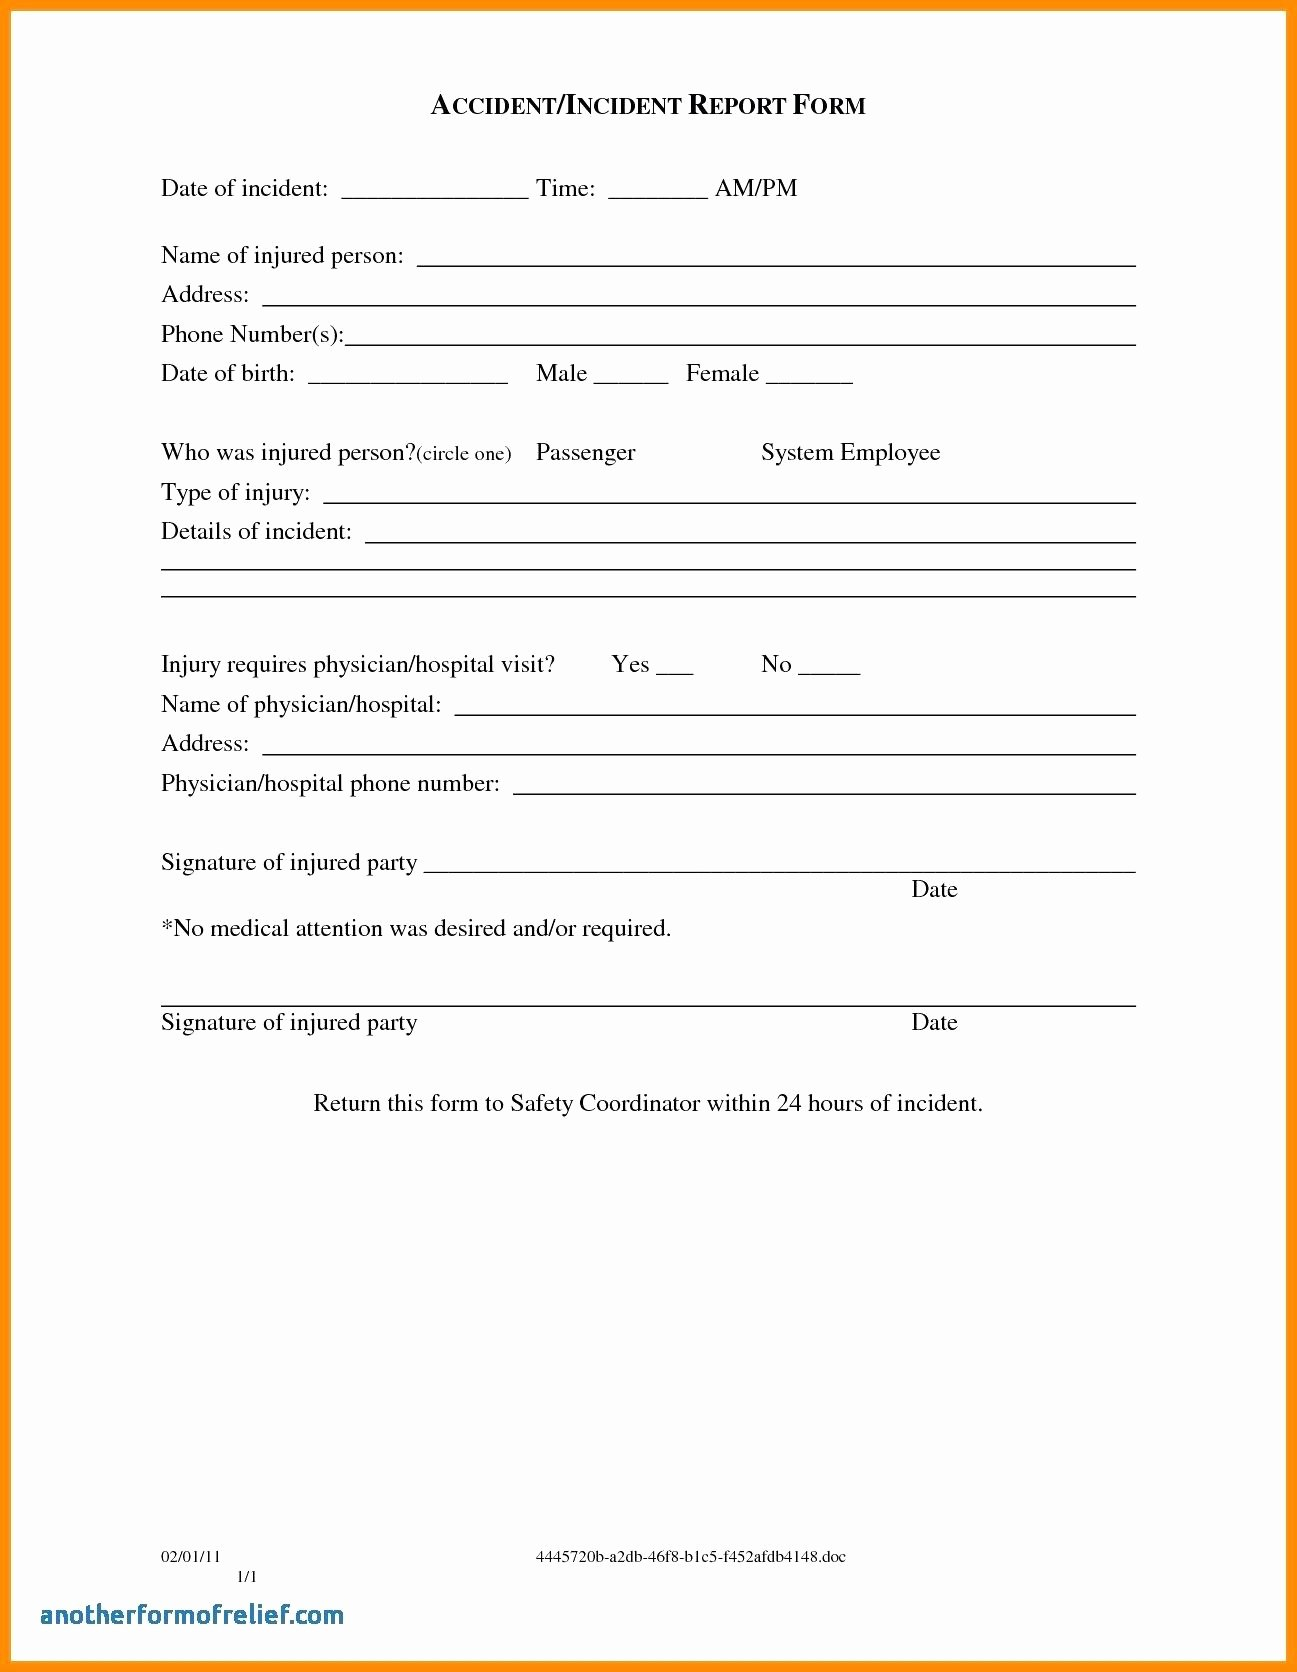 Template Ideas Accident Report Forms Incident Hazard Form And Within Hazard Incident Report Form Template